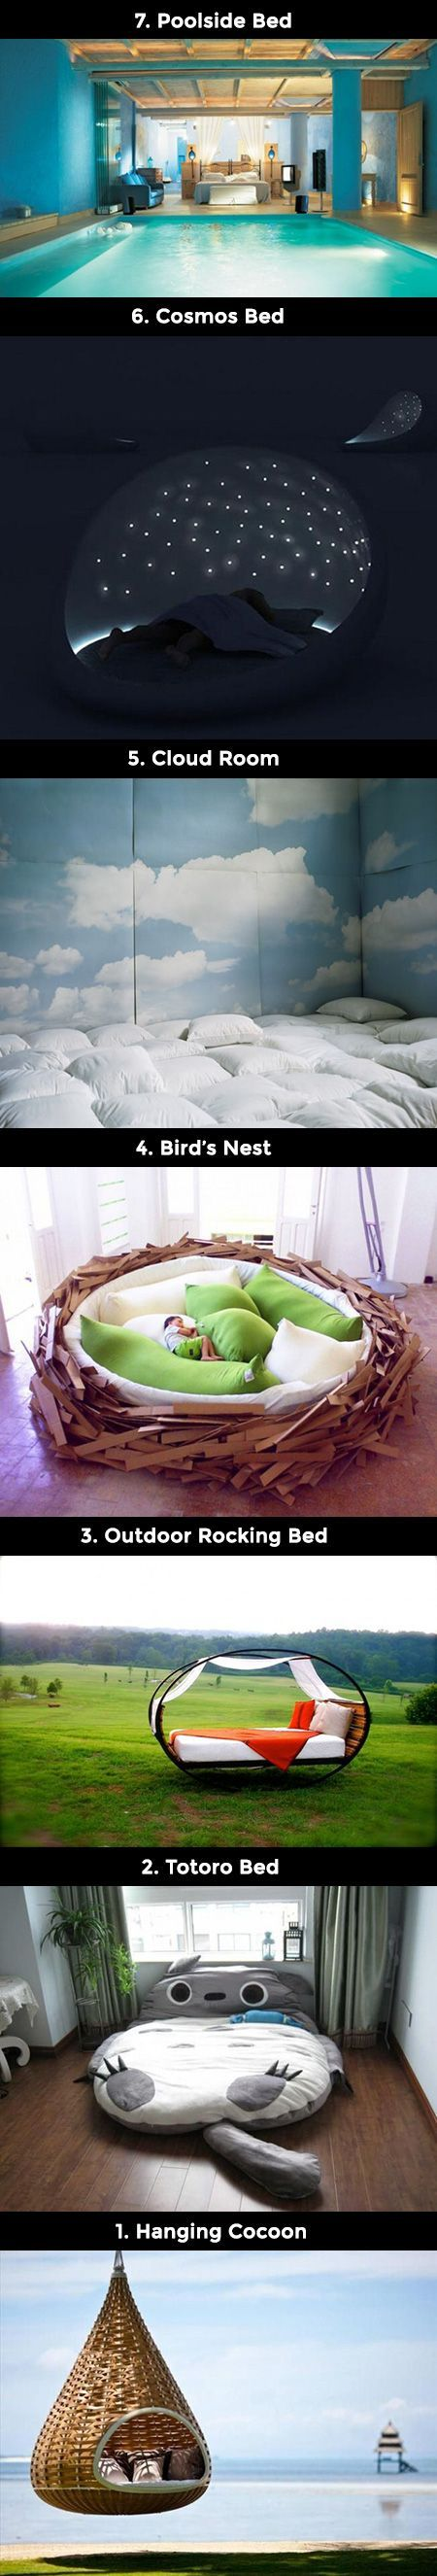 7 Awesome Sleeping Creations That Geeks Would Love